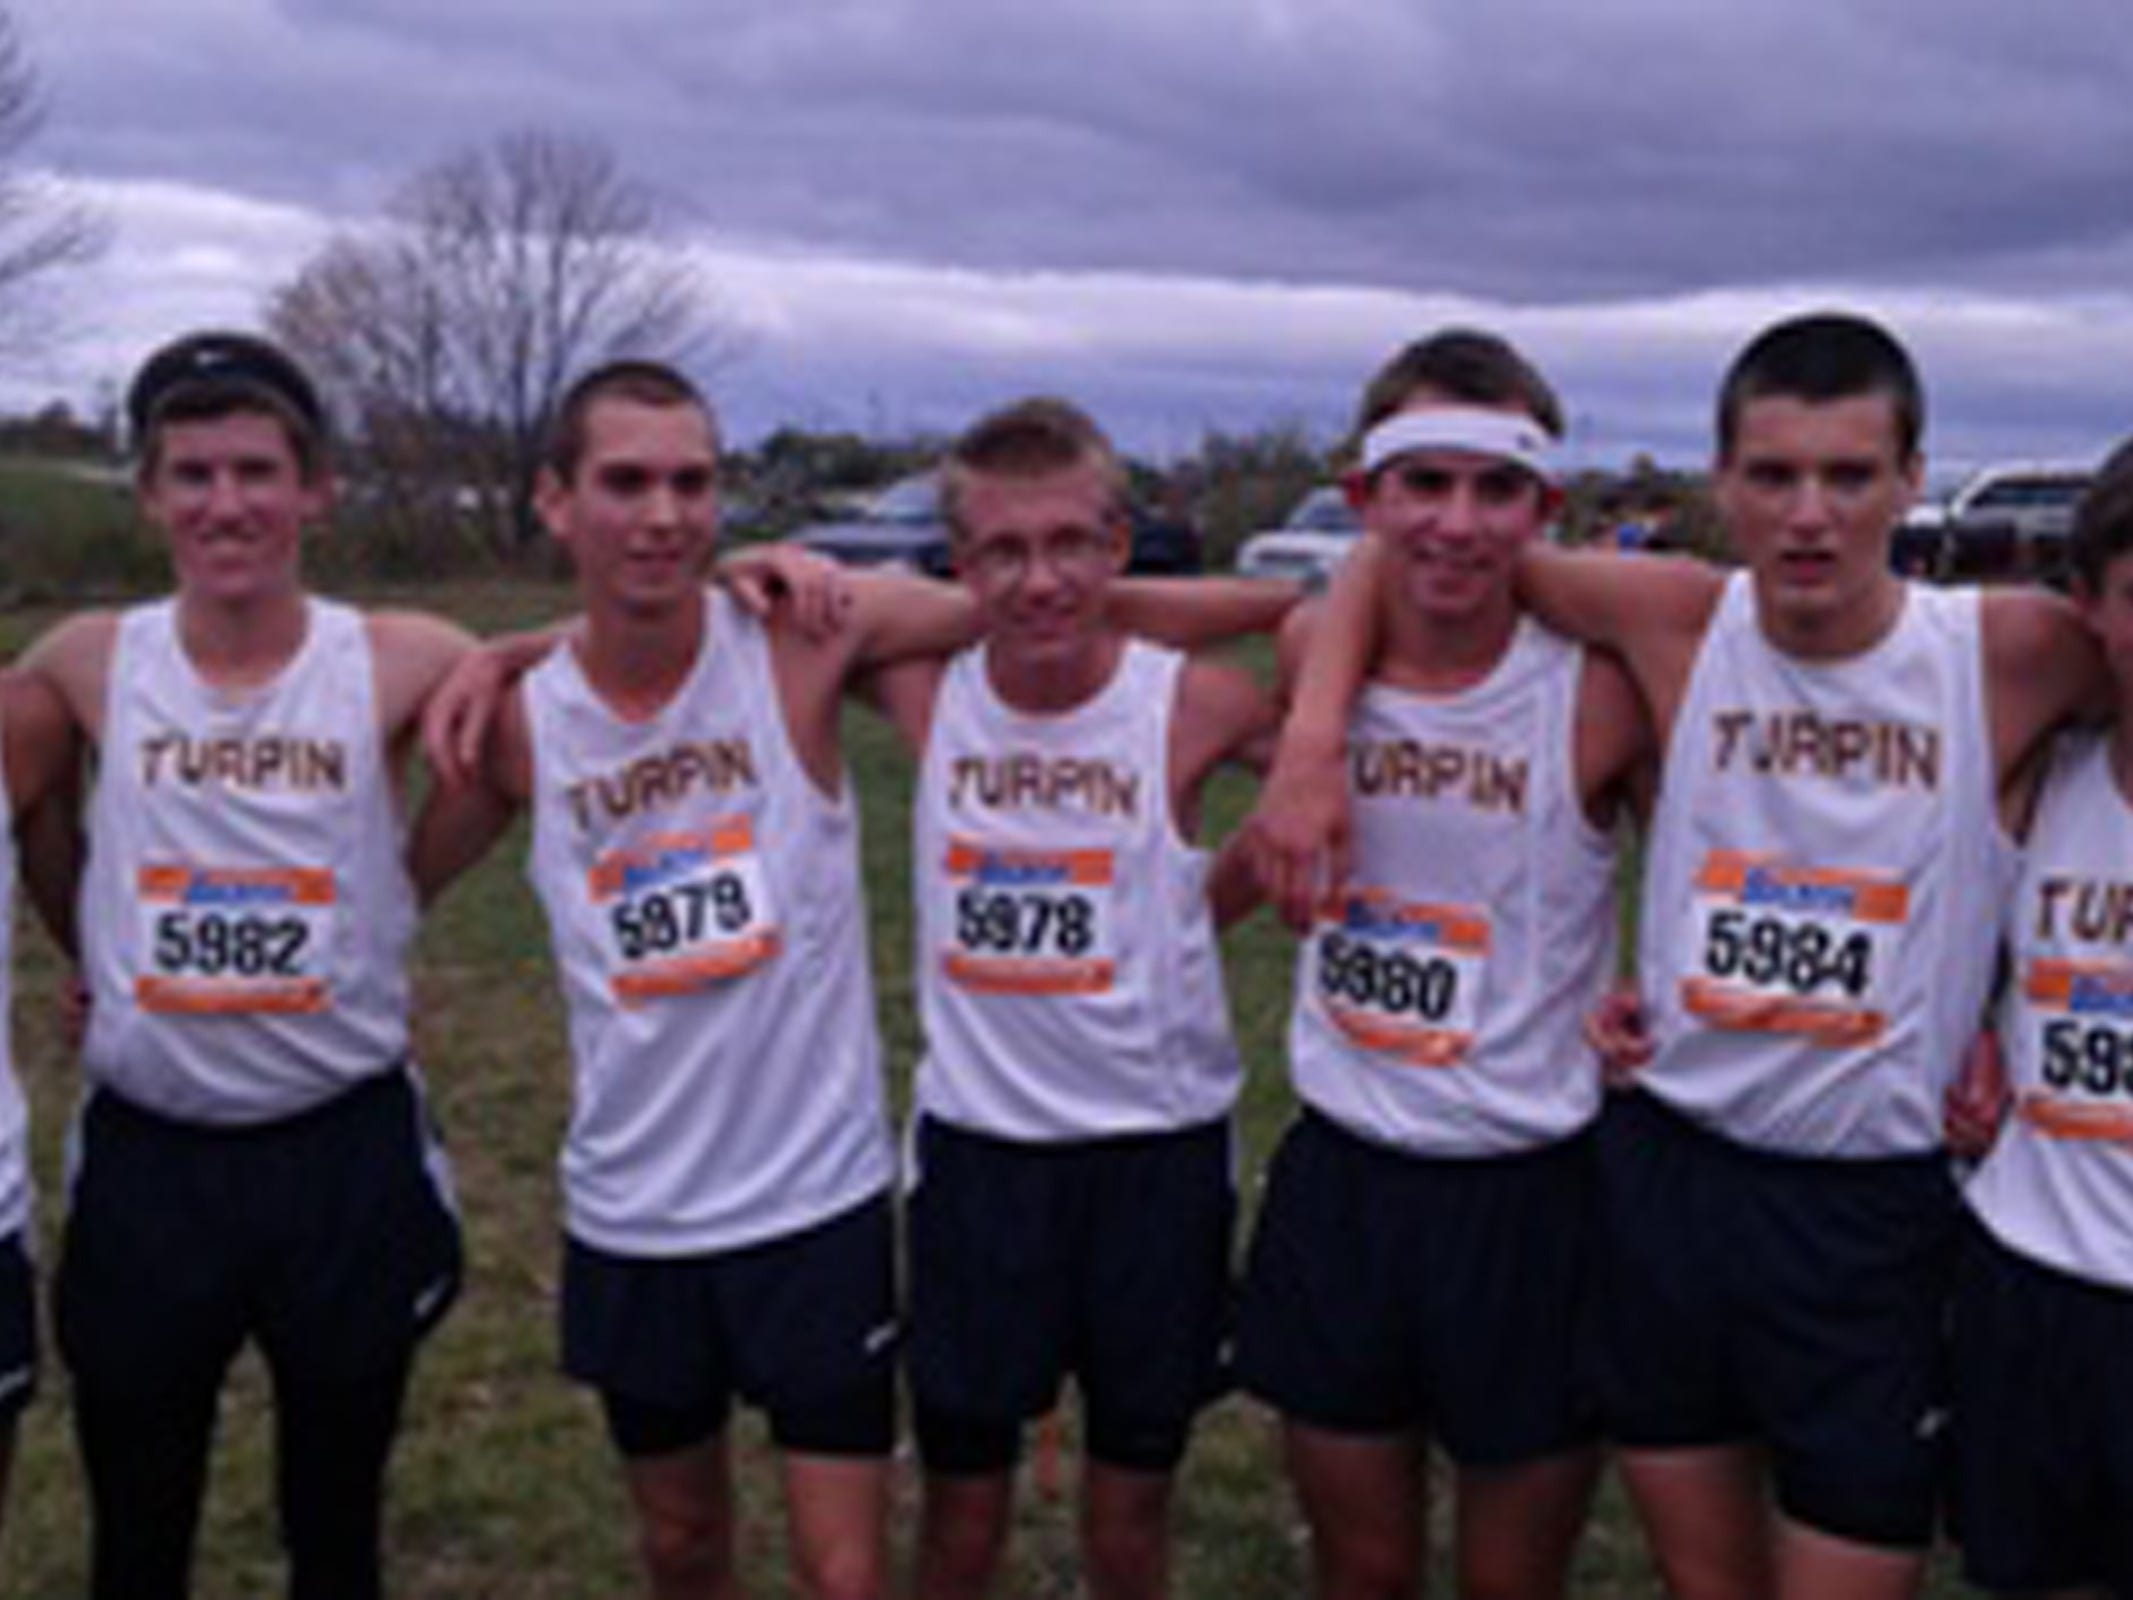 The Turpin boys cross country team placed fourth in the Southwest District meet at VOA Park, qualifying it for regionals. The same core group should lead the Spartans in the track and field season. From left are: Andrew Patty, Alex Tanner, Dante Marcon, Ben Gothard, Ben Norton, Ryan Wiesman and Graham Weaver.